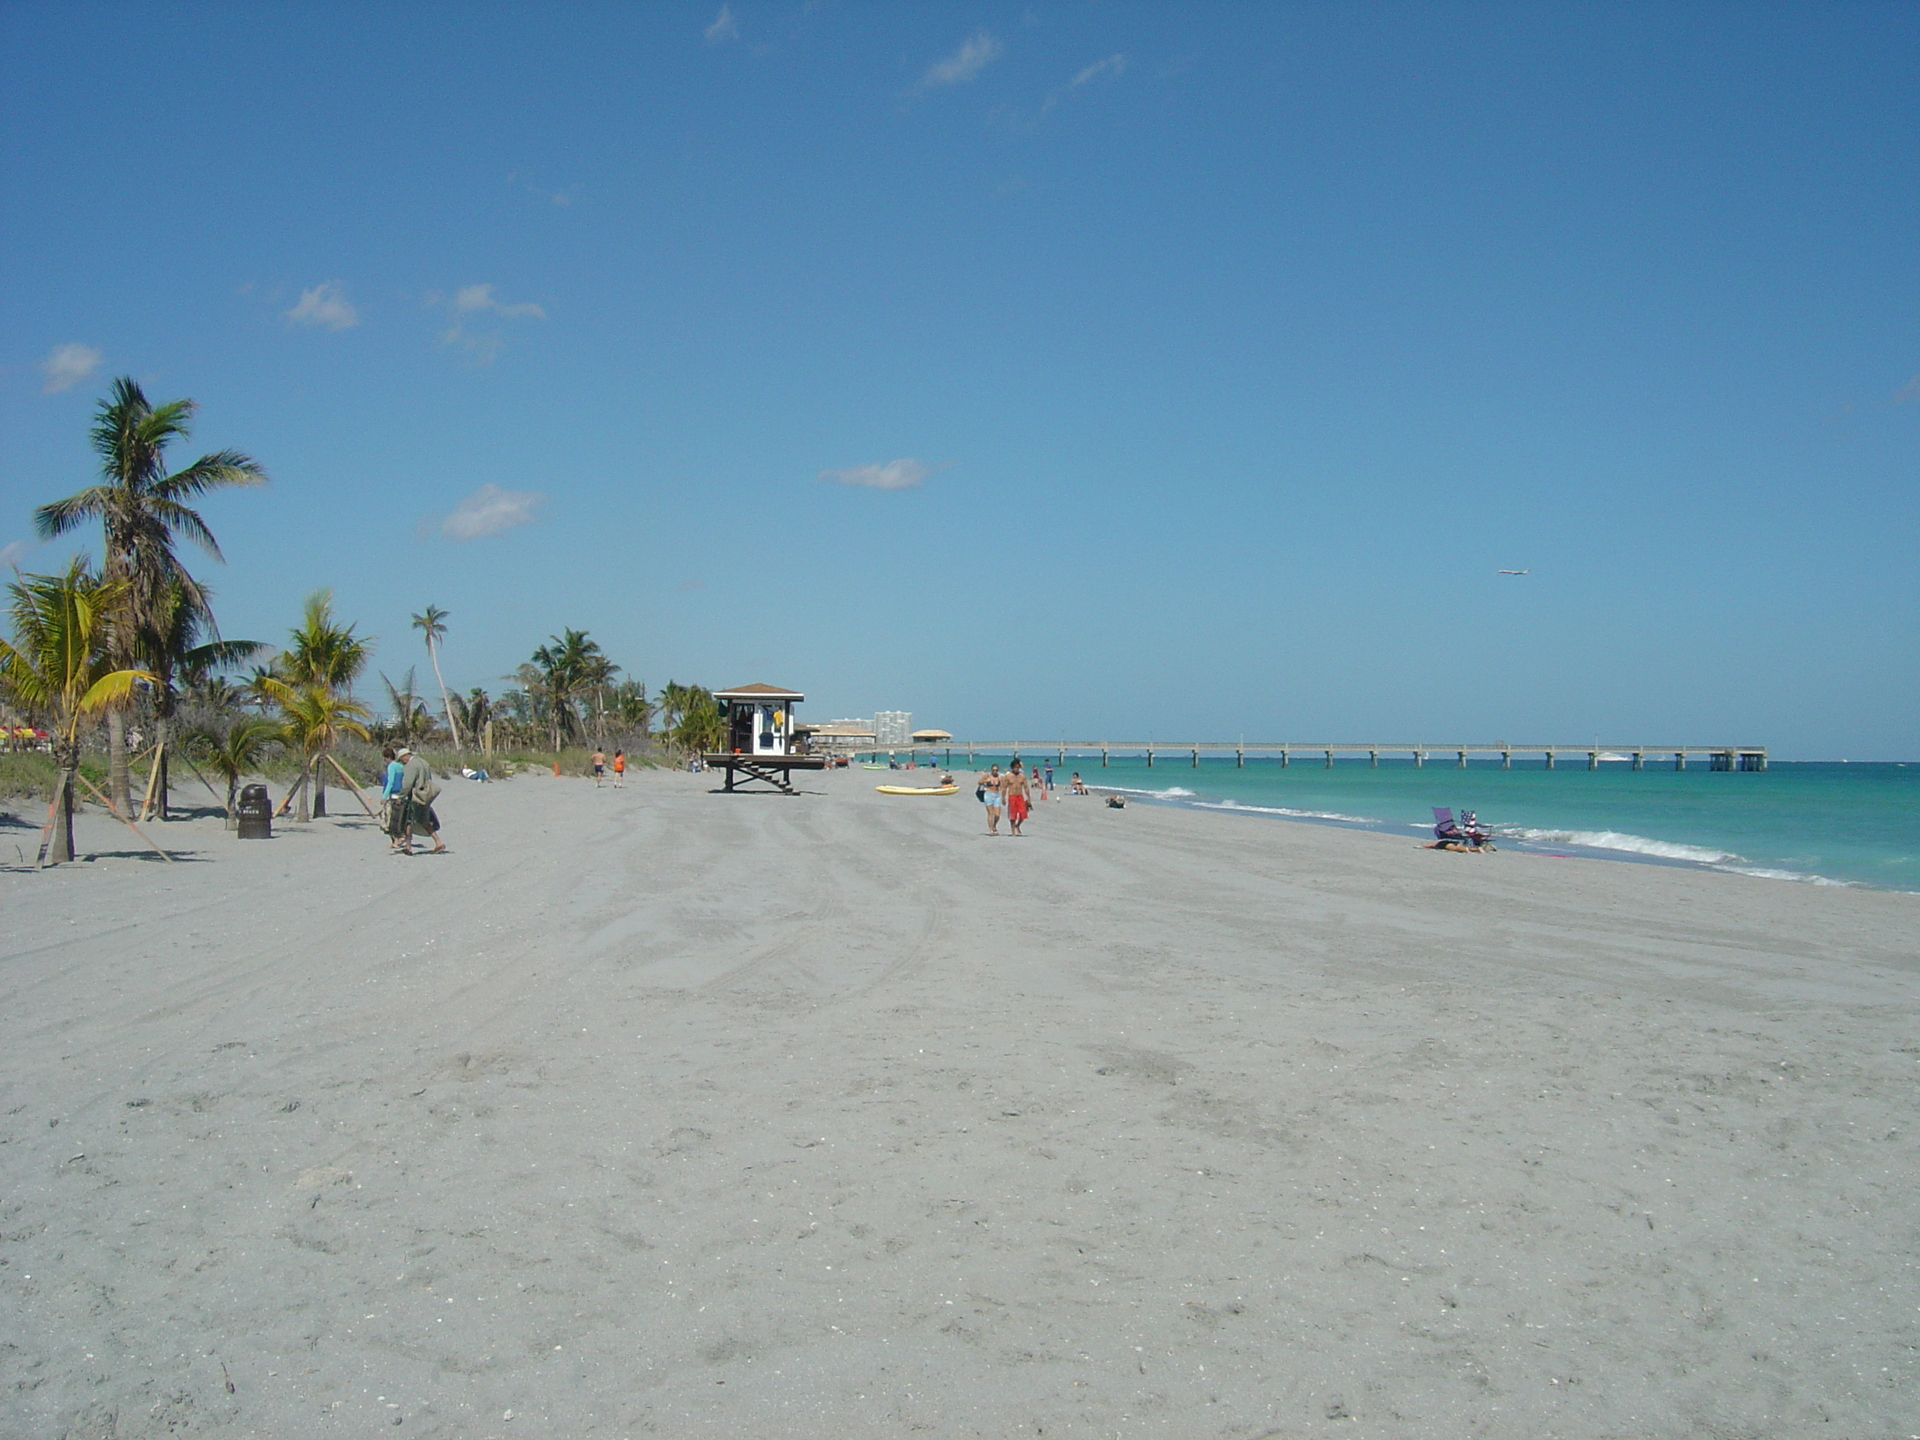 Travel Images Dania Beach Florida Hd Wallpaper And Background Photos